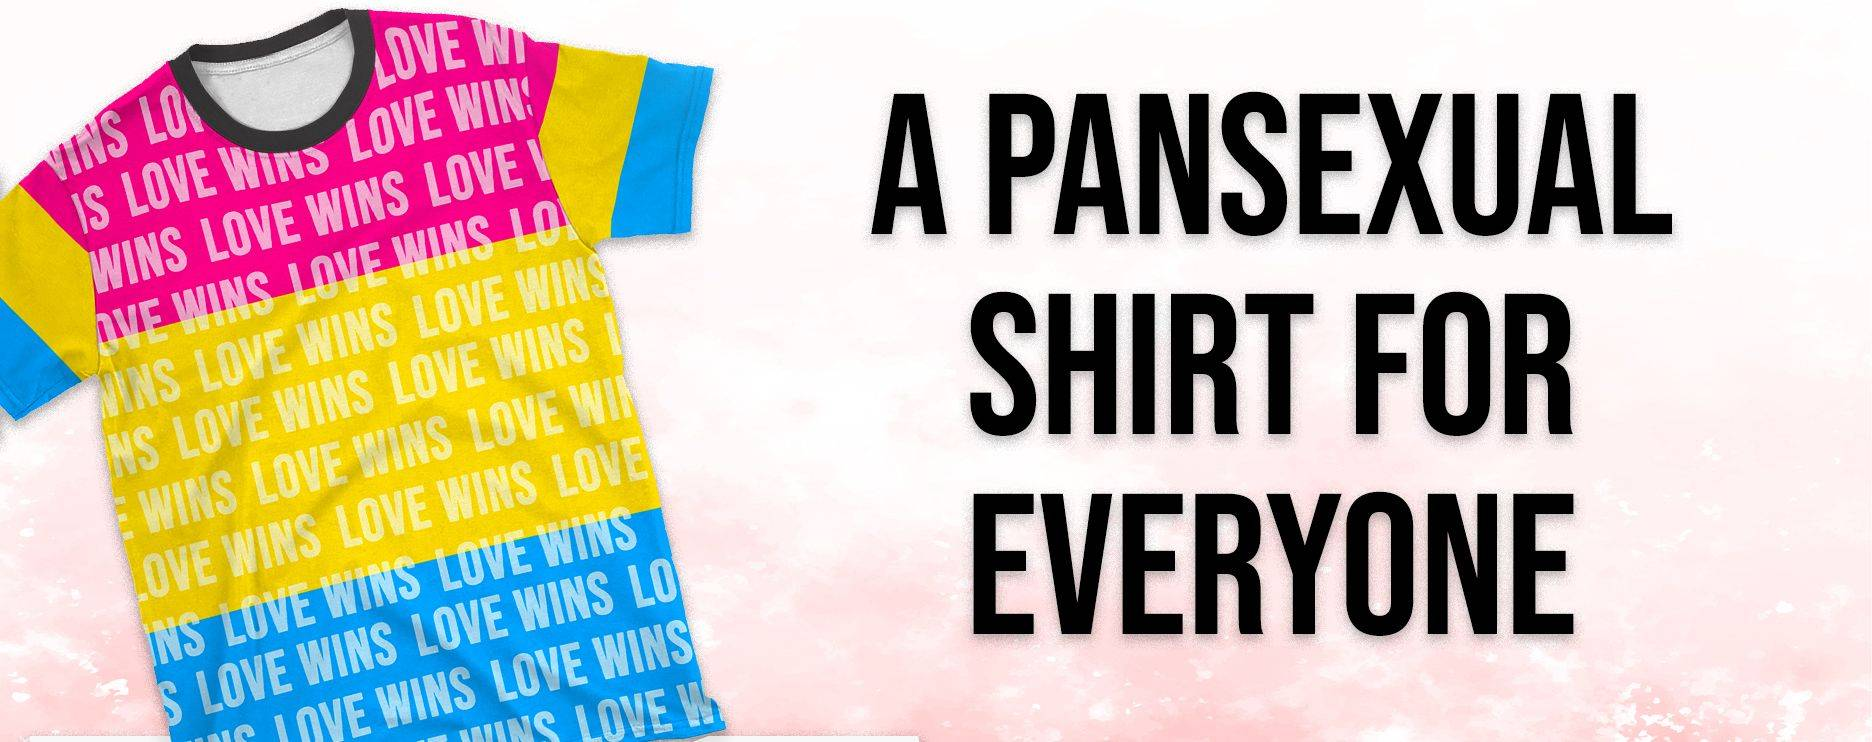 pansexual shirt for everyone